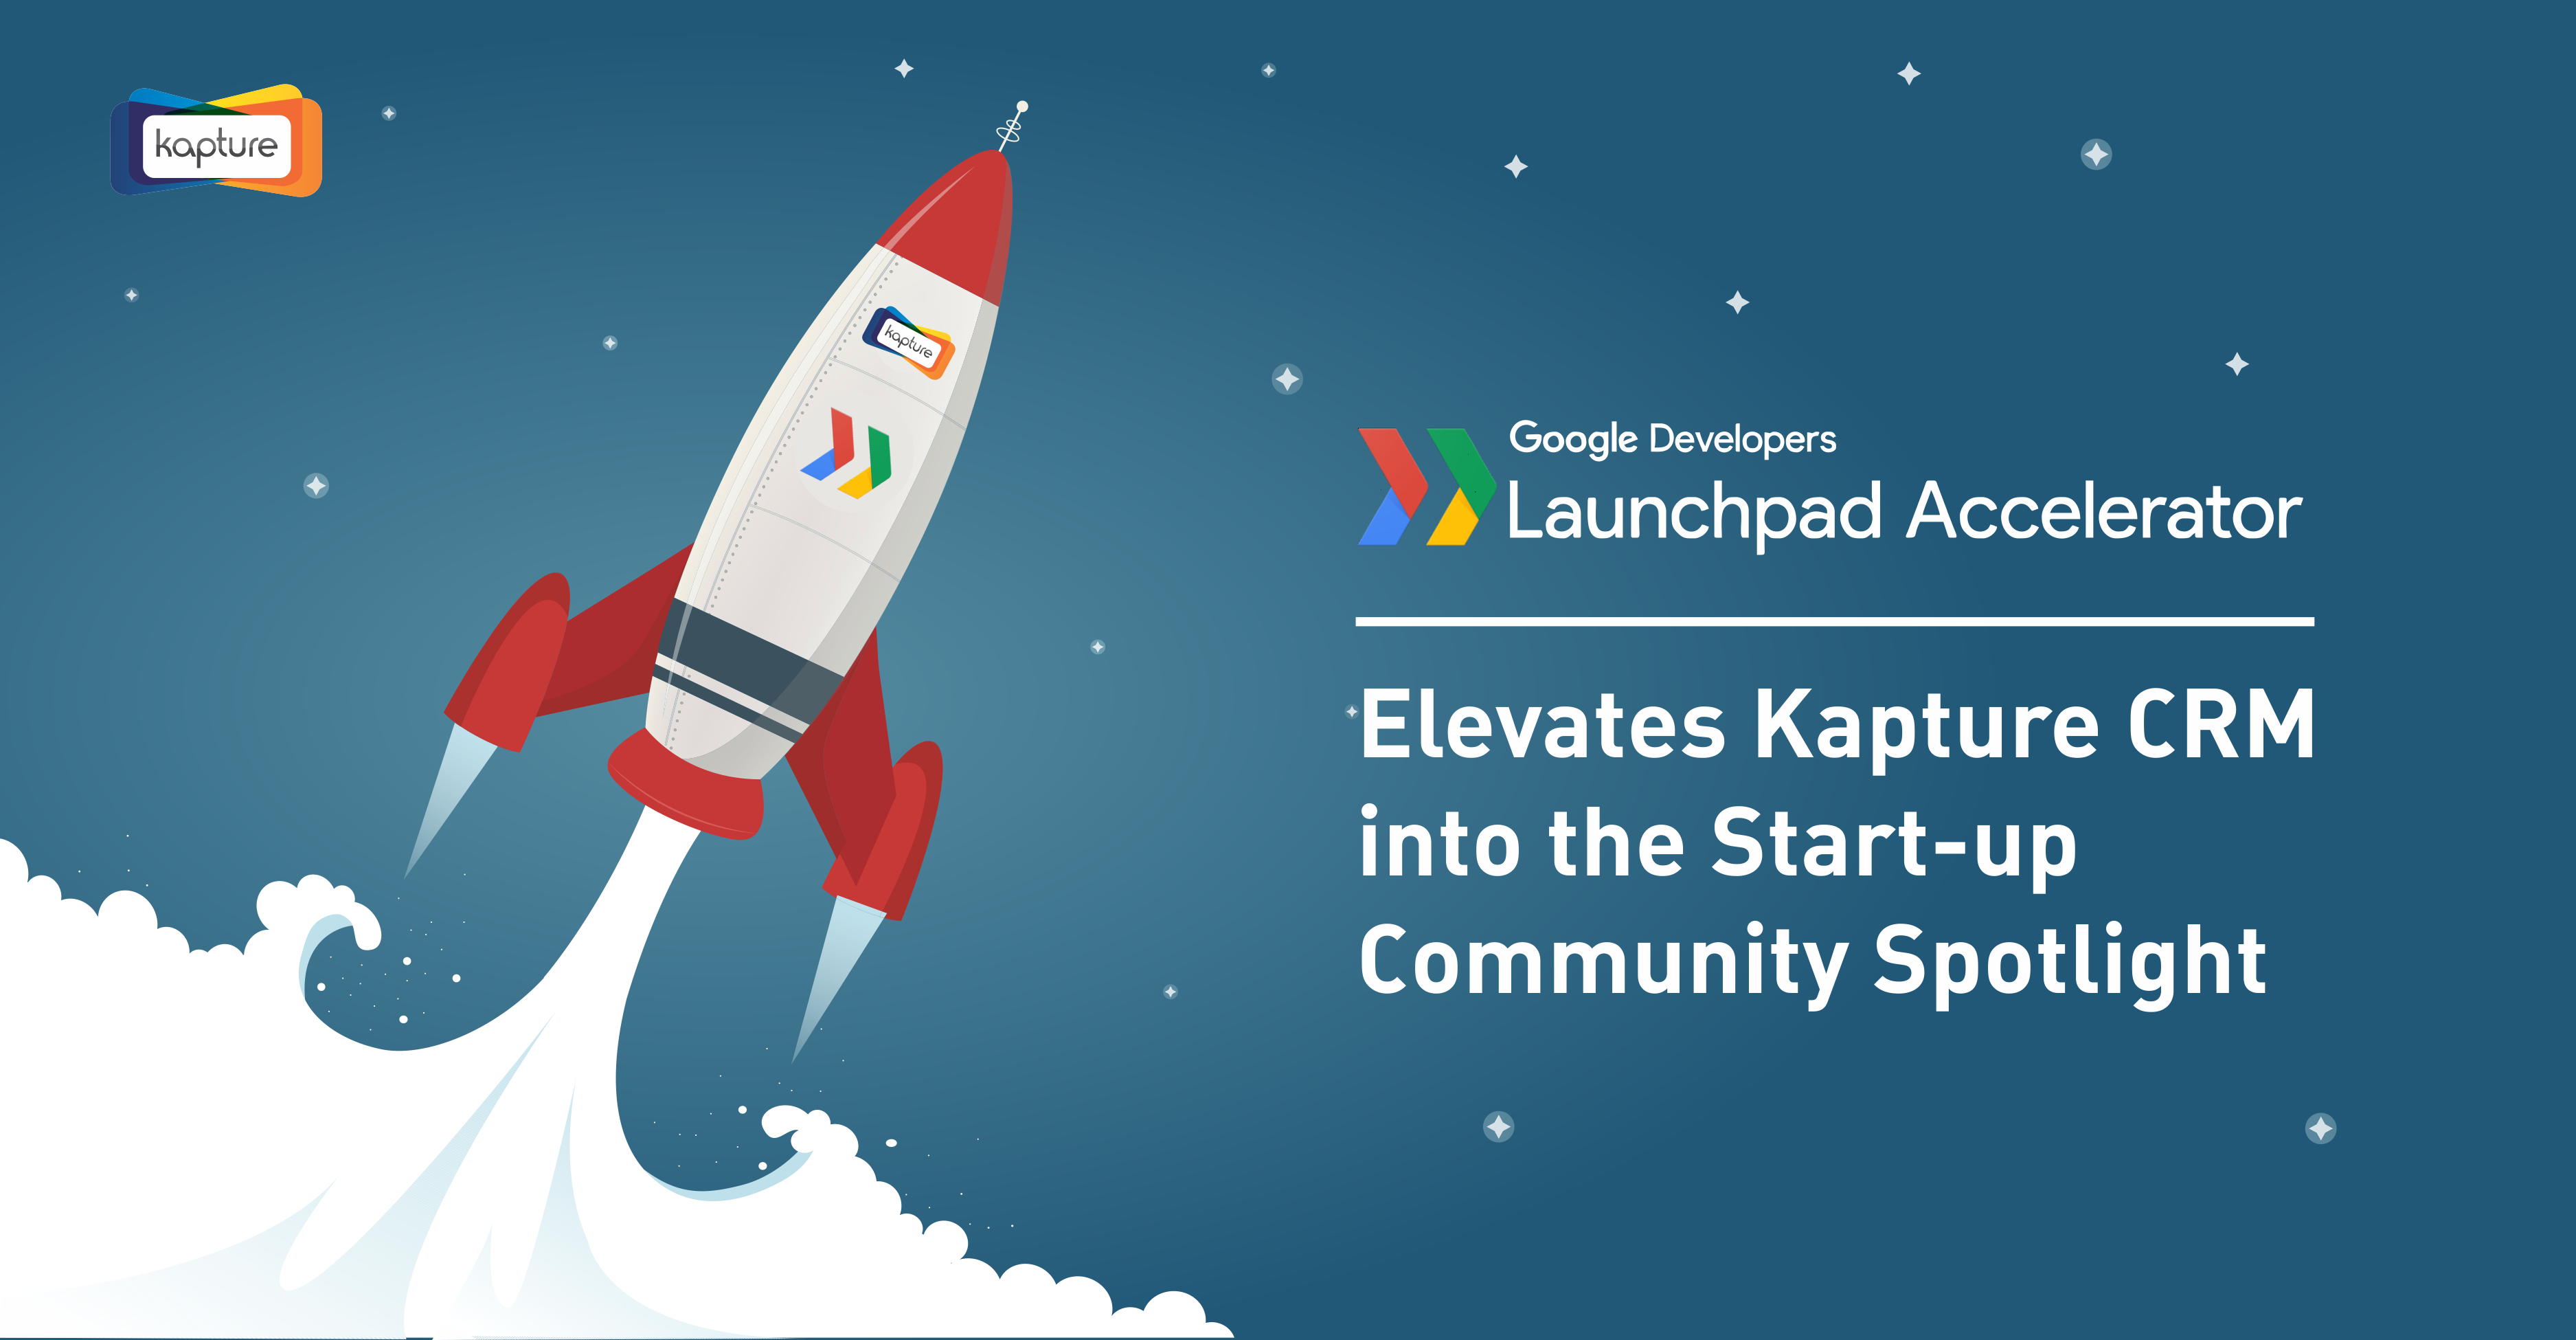 Google LaunchPad Accelerator Programm Hebt Kapture CRM in das Start-up Community Spotlight